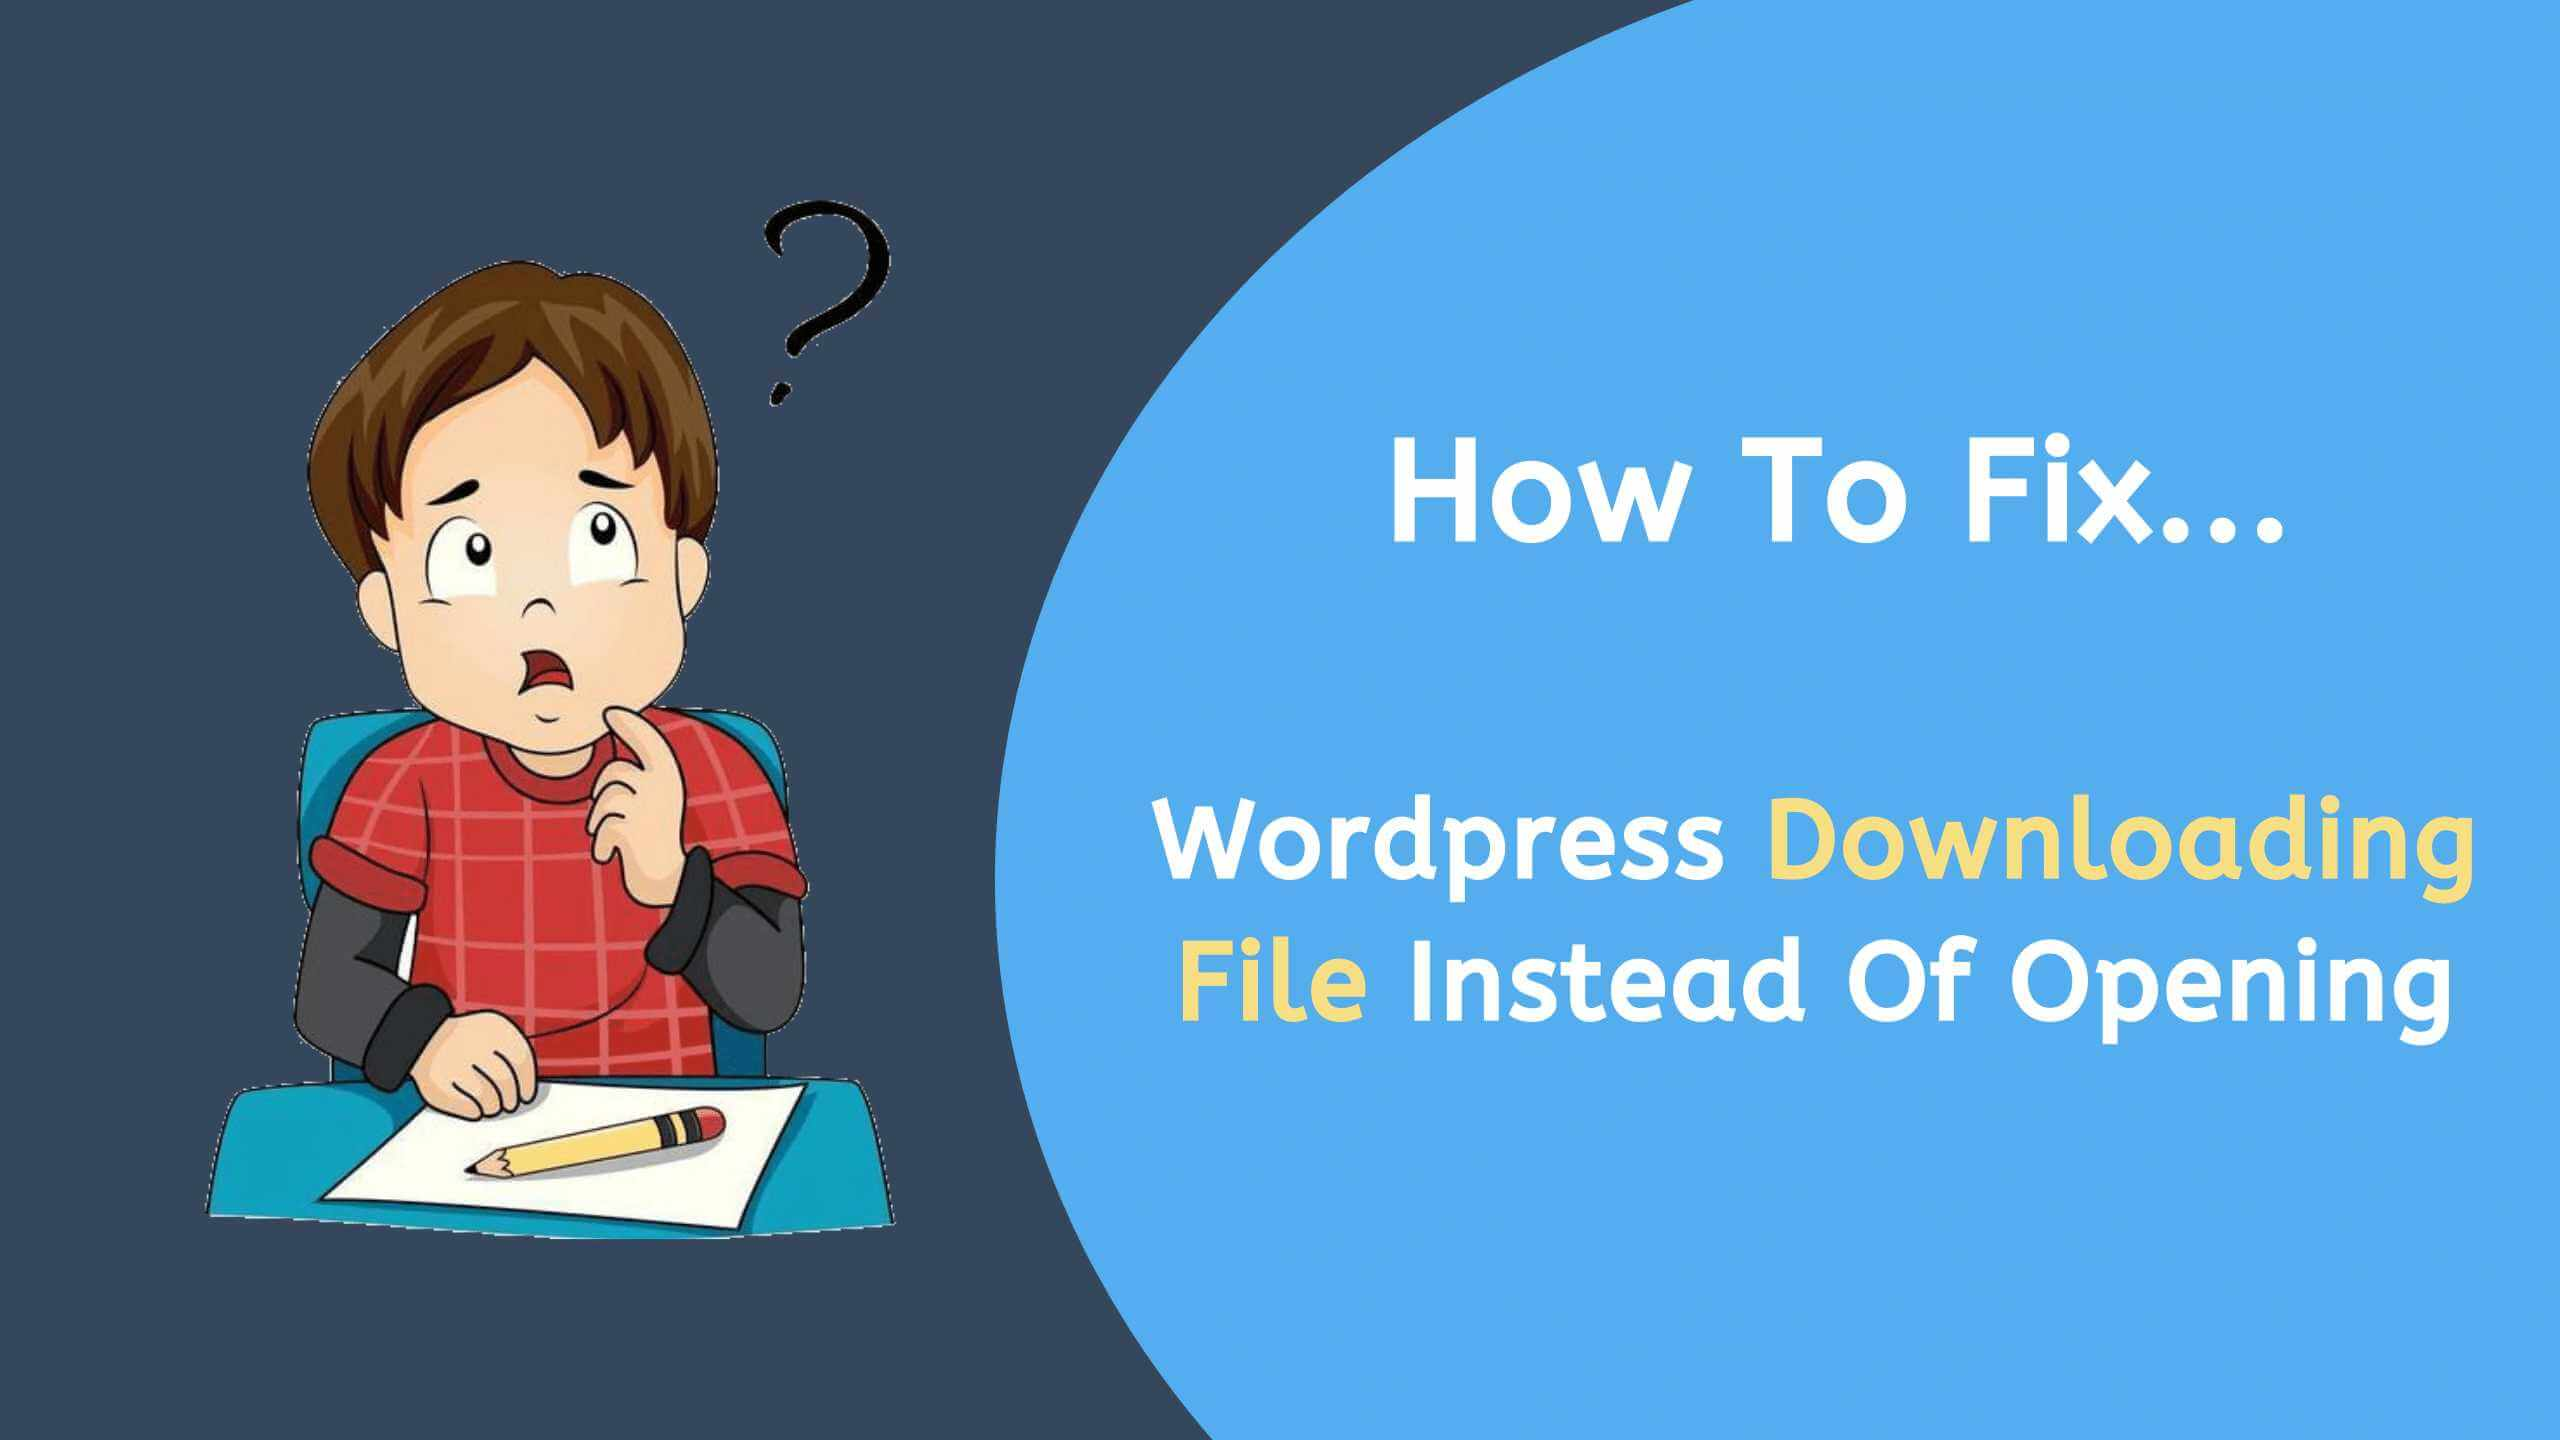 php downloading a file, php downloading files, php file downloading instead of executing, php files downloading, php files downloading instead of running, website downloading instead of opening in browser, wordpress download file, wordpress download file instead of opening in browser, wordpress file download, wordpress site downloads file